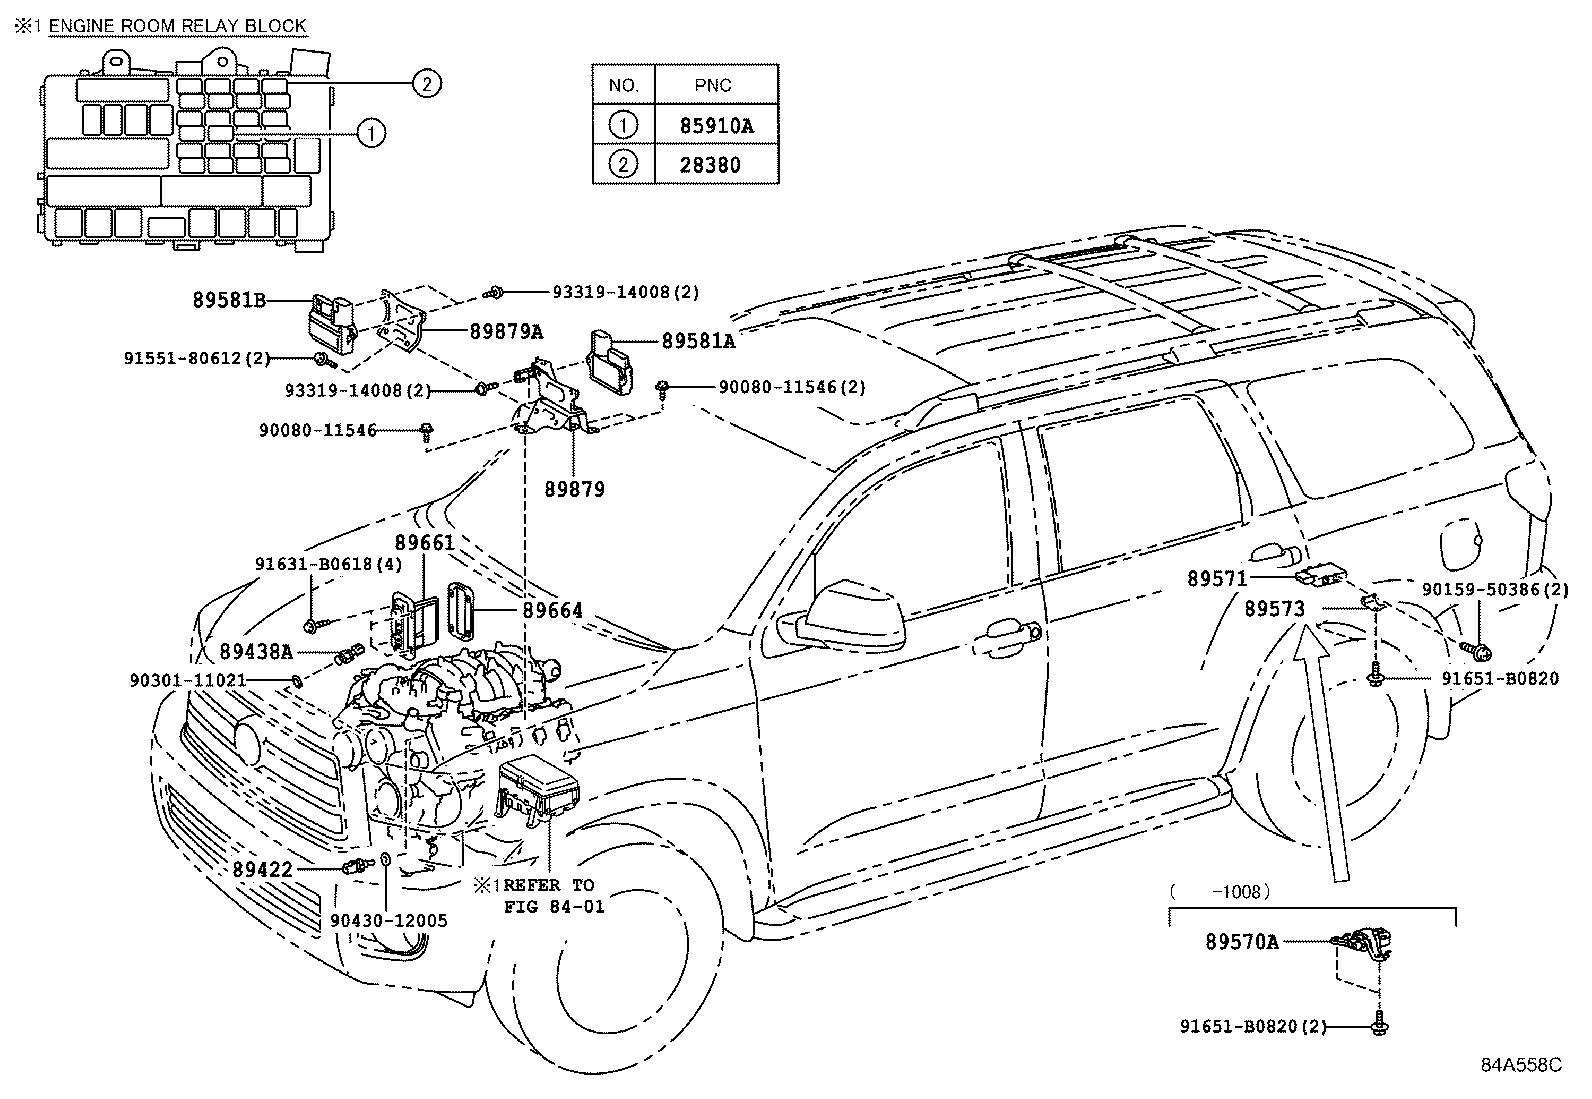 Diagram ELECTRONIC FUEL INJECTION SYSTEM for your 2017 Toyota Sequoia